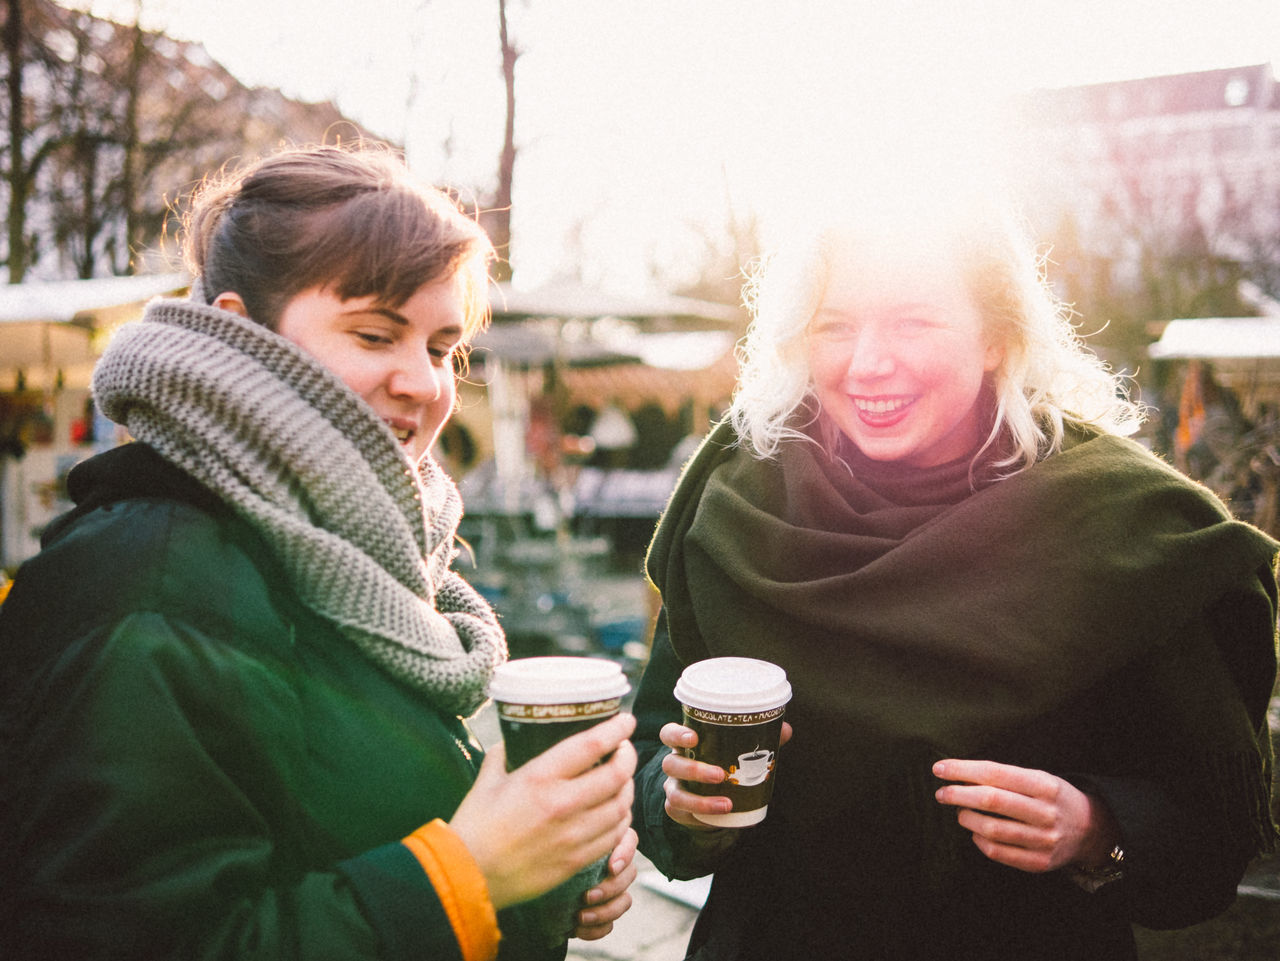 Happy friends holding disposable coffee cup in flea market